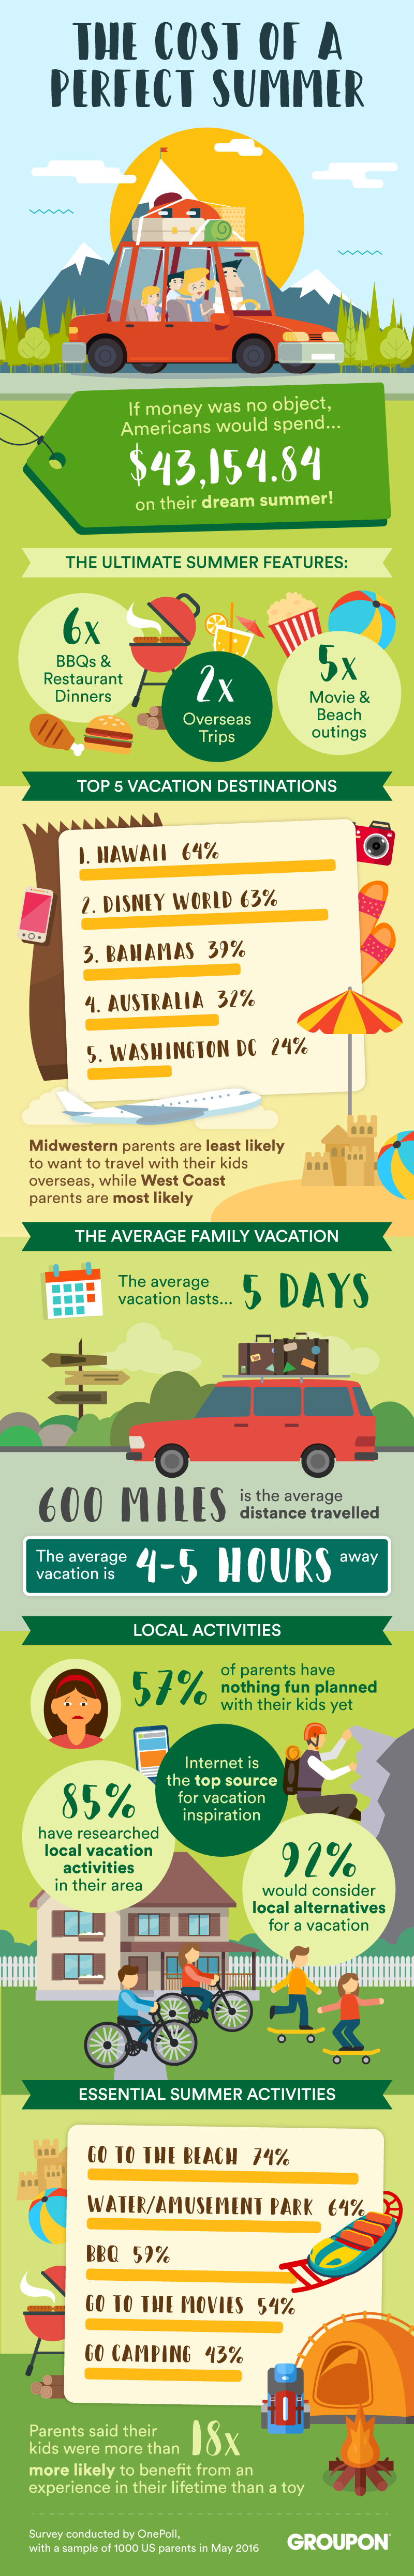 groupon_infographic_weboptimized